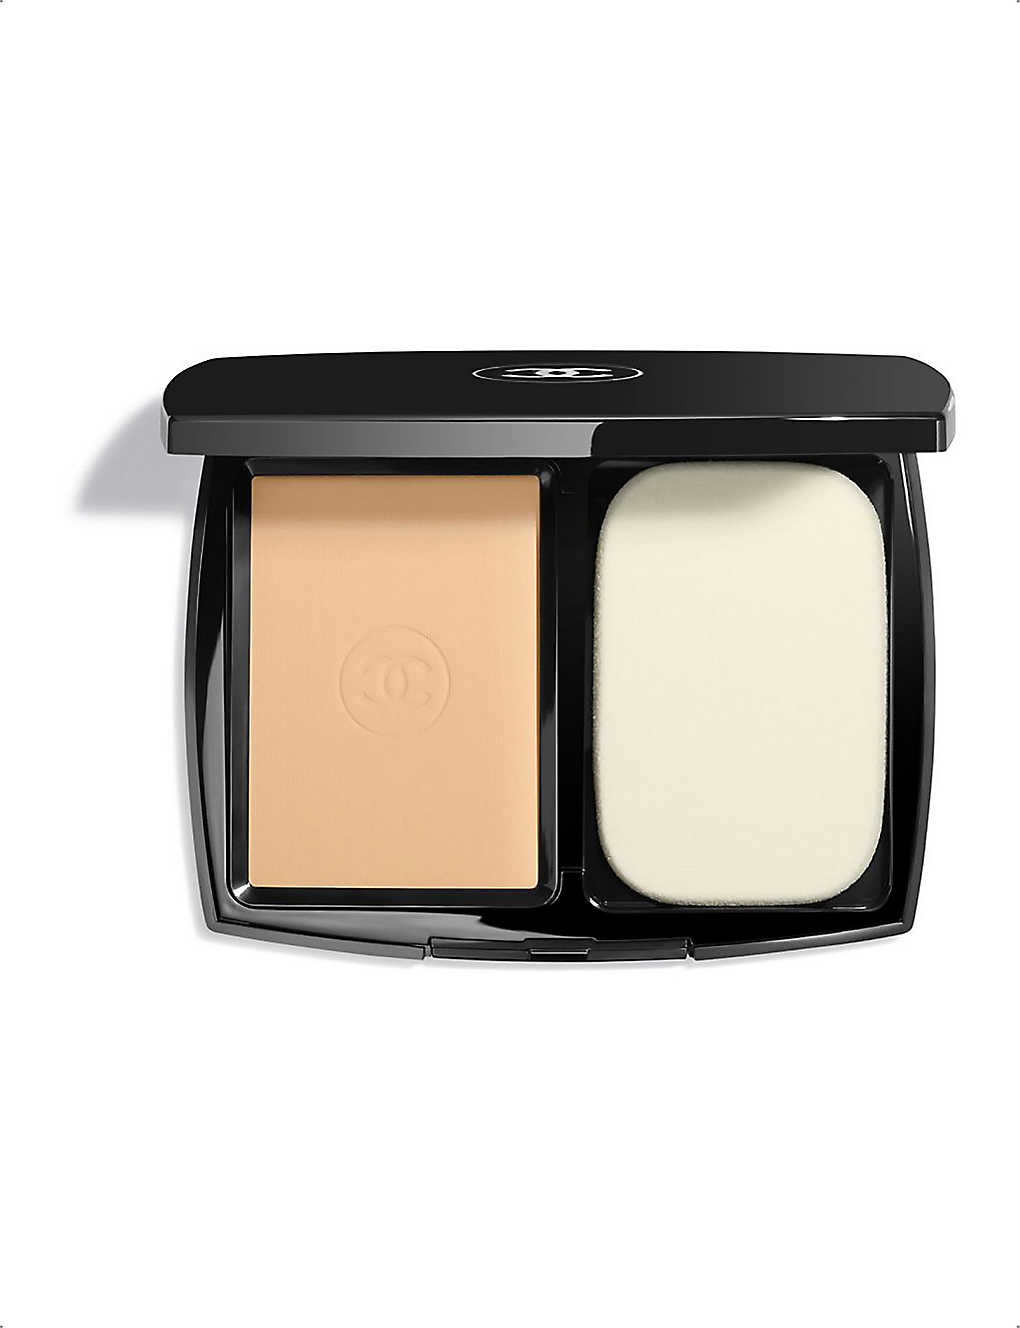 <STRONG>ULTRA LE TEINT</STRONG> All–Day Comfort Flawless Finish Compact Foundation 30ml - B50